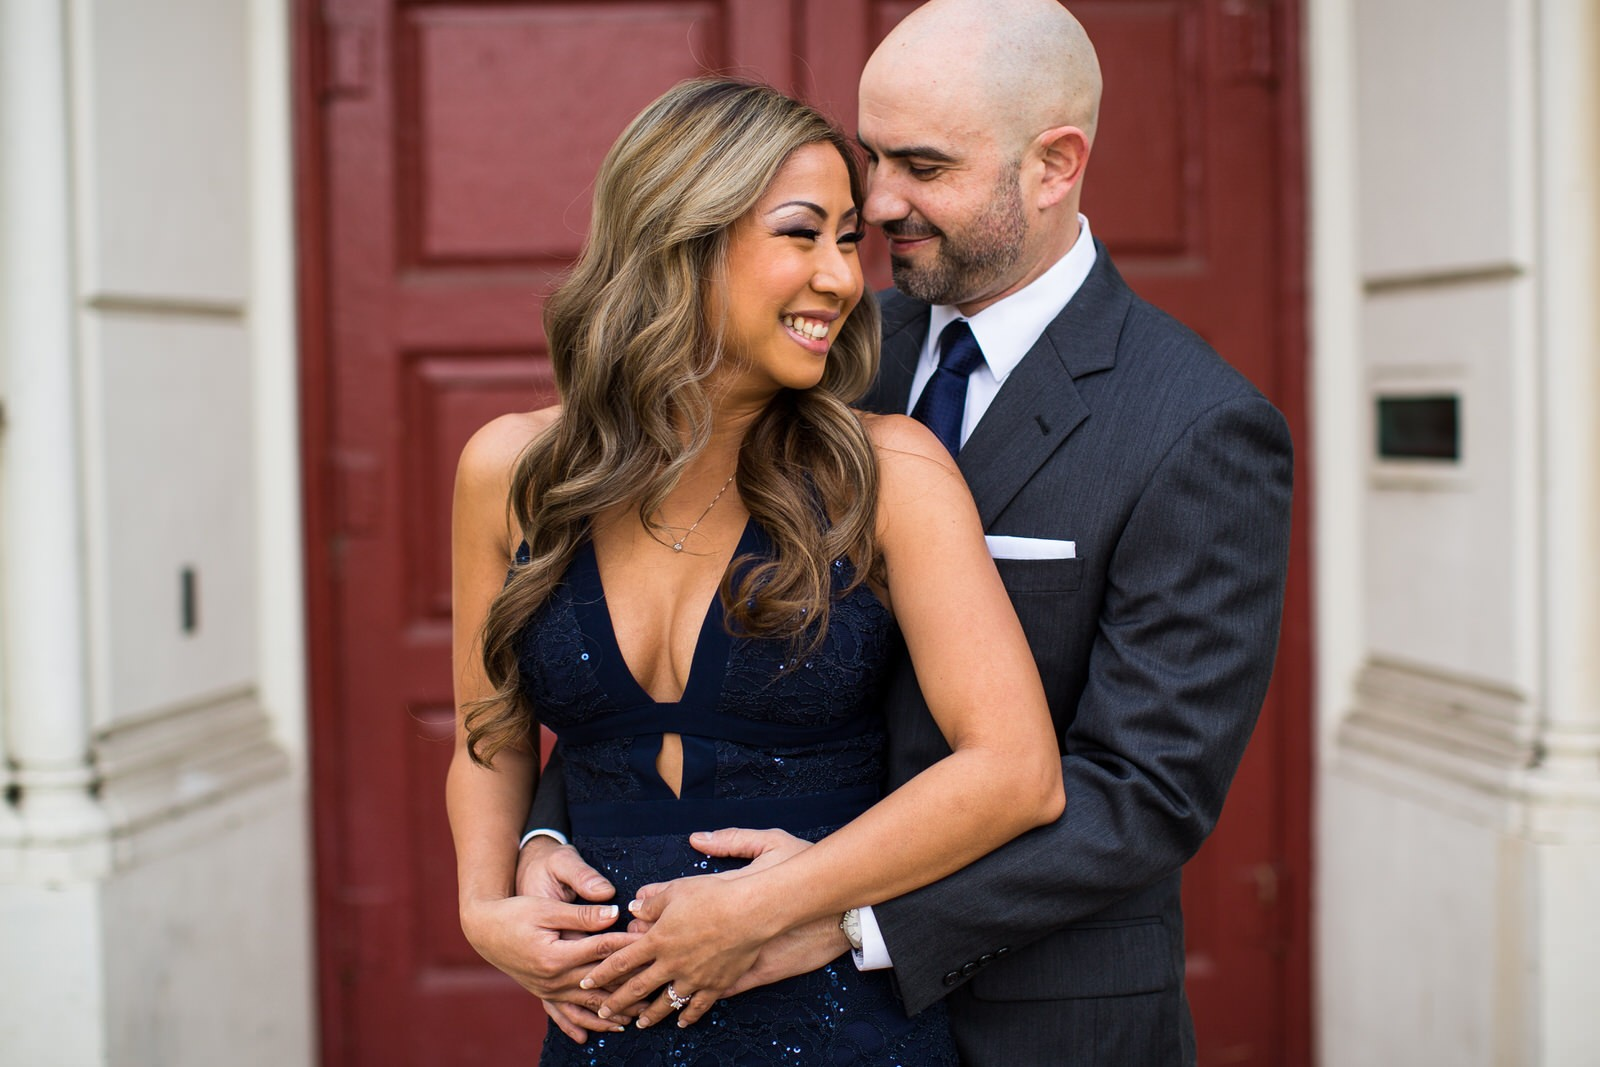 donwtown-fullerton-engagement-photography